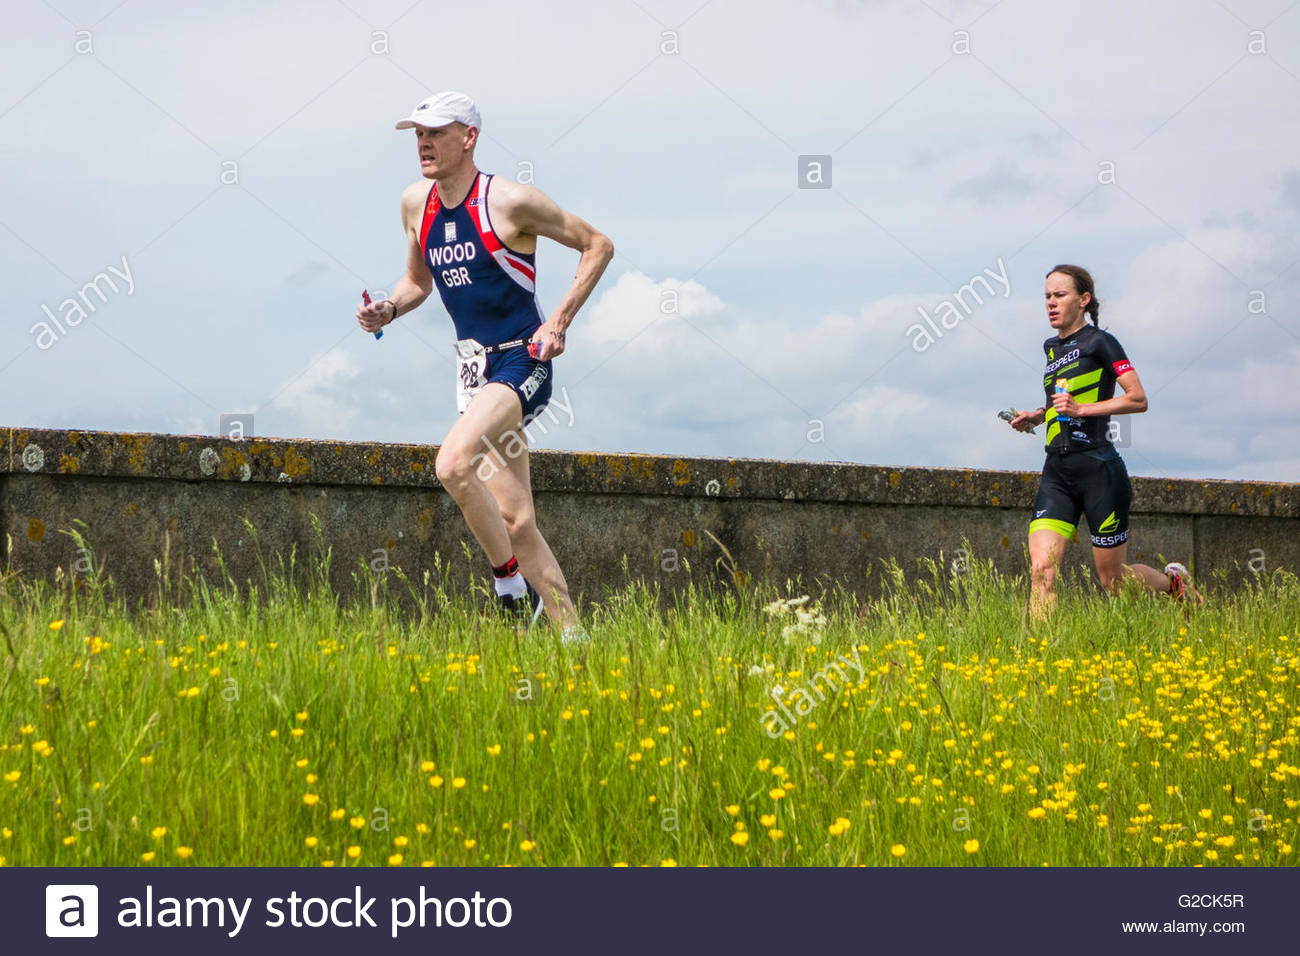 Runners in a triathlon at Grafham Water run along the dam wall with buttercups in the adjacent field - Stock Image